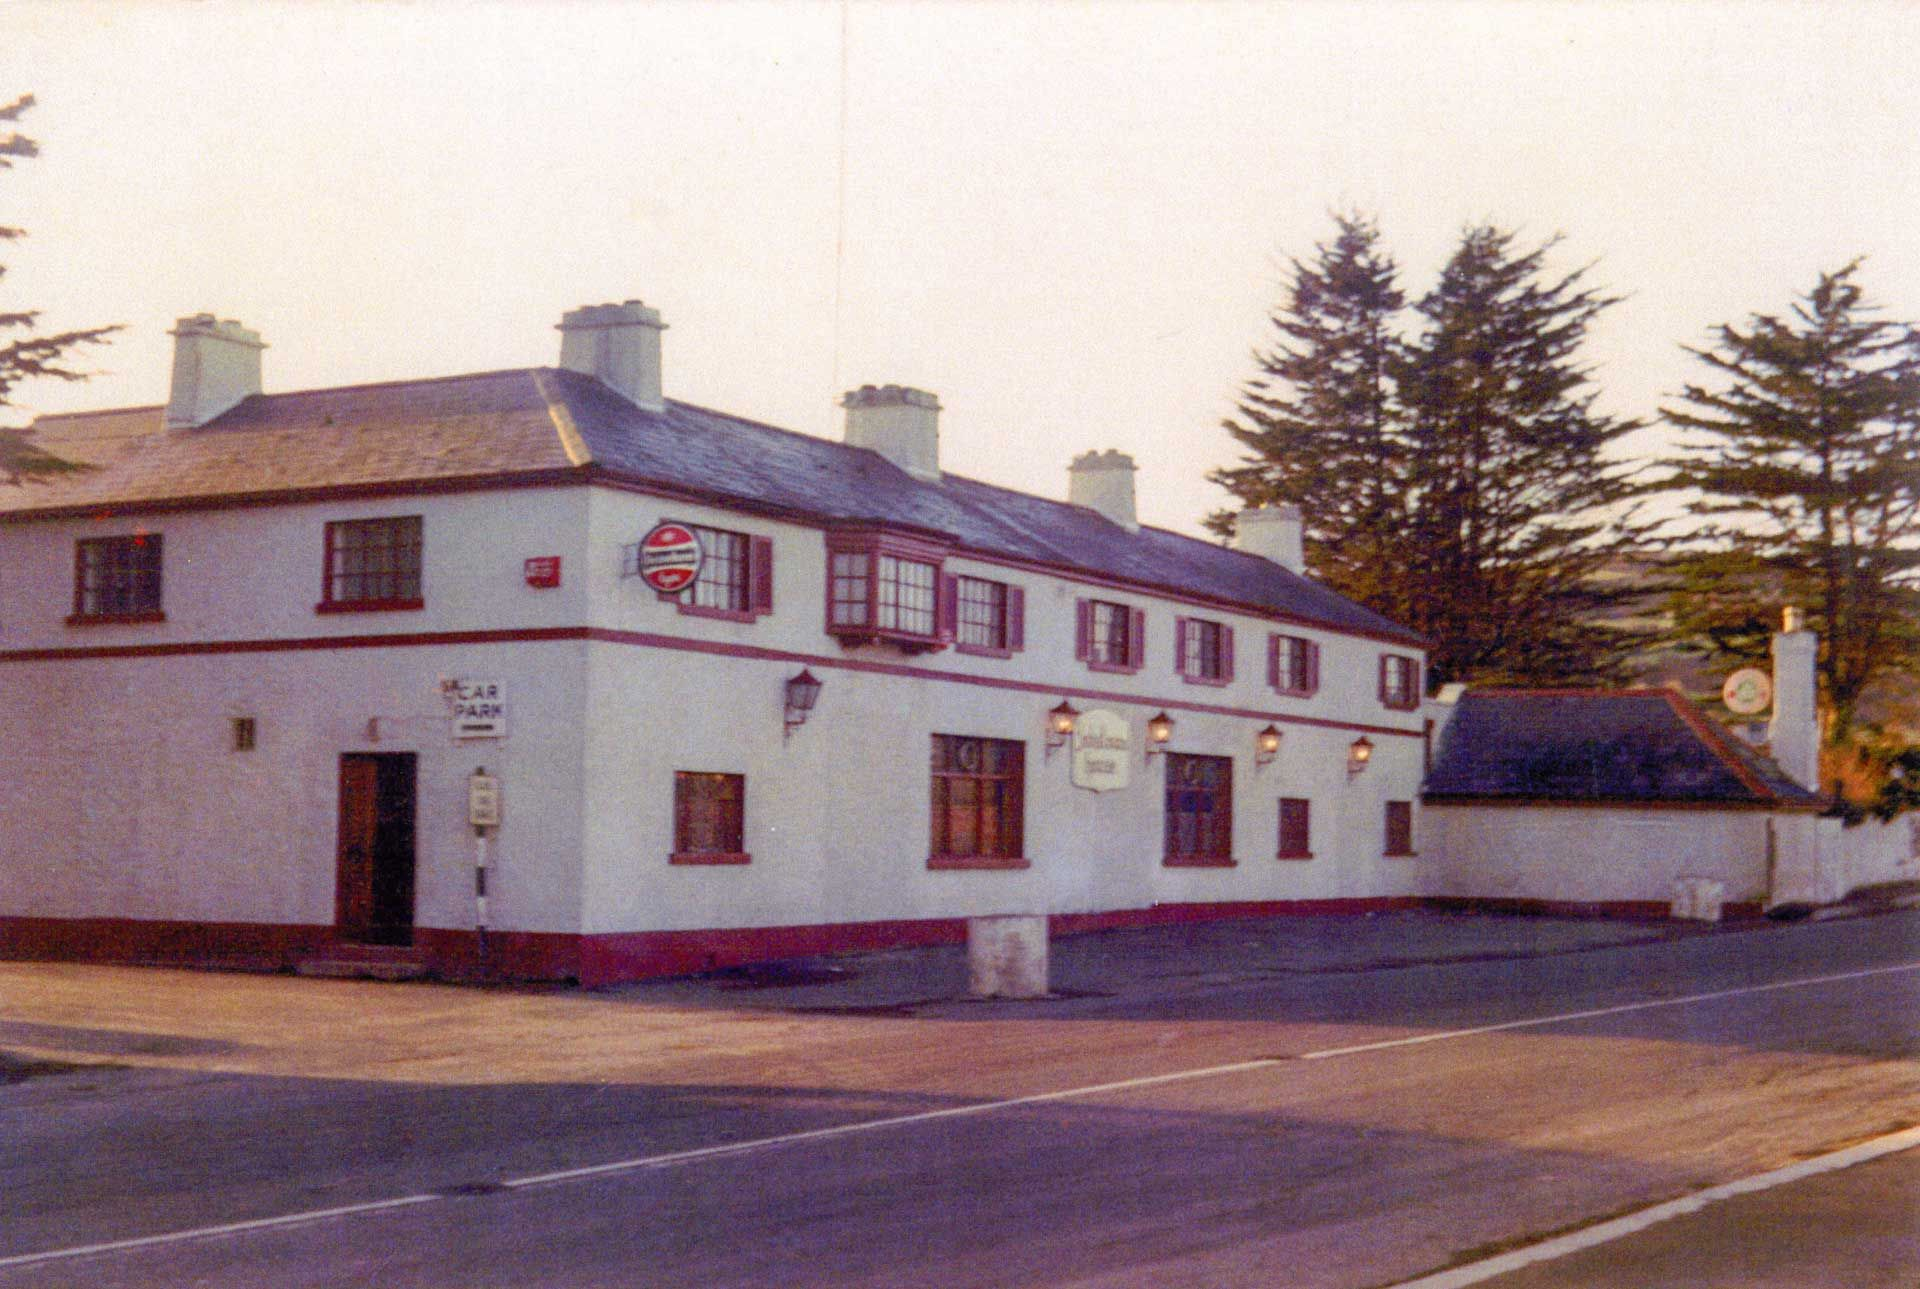 The Jobstown House